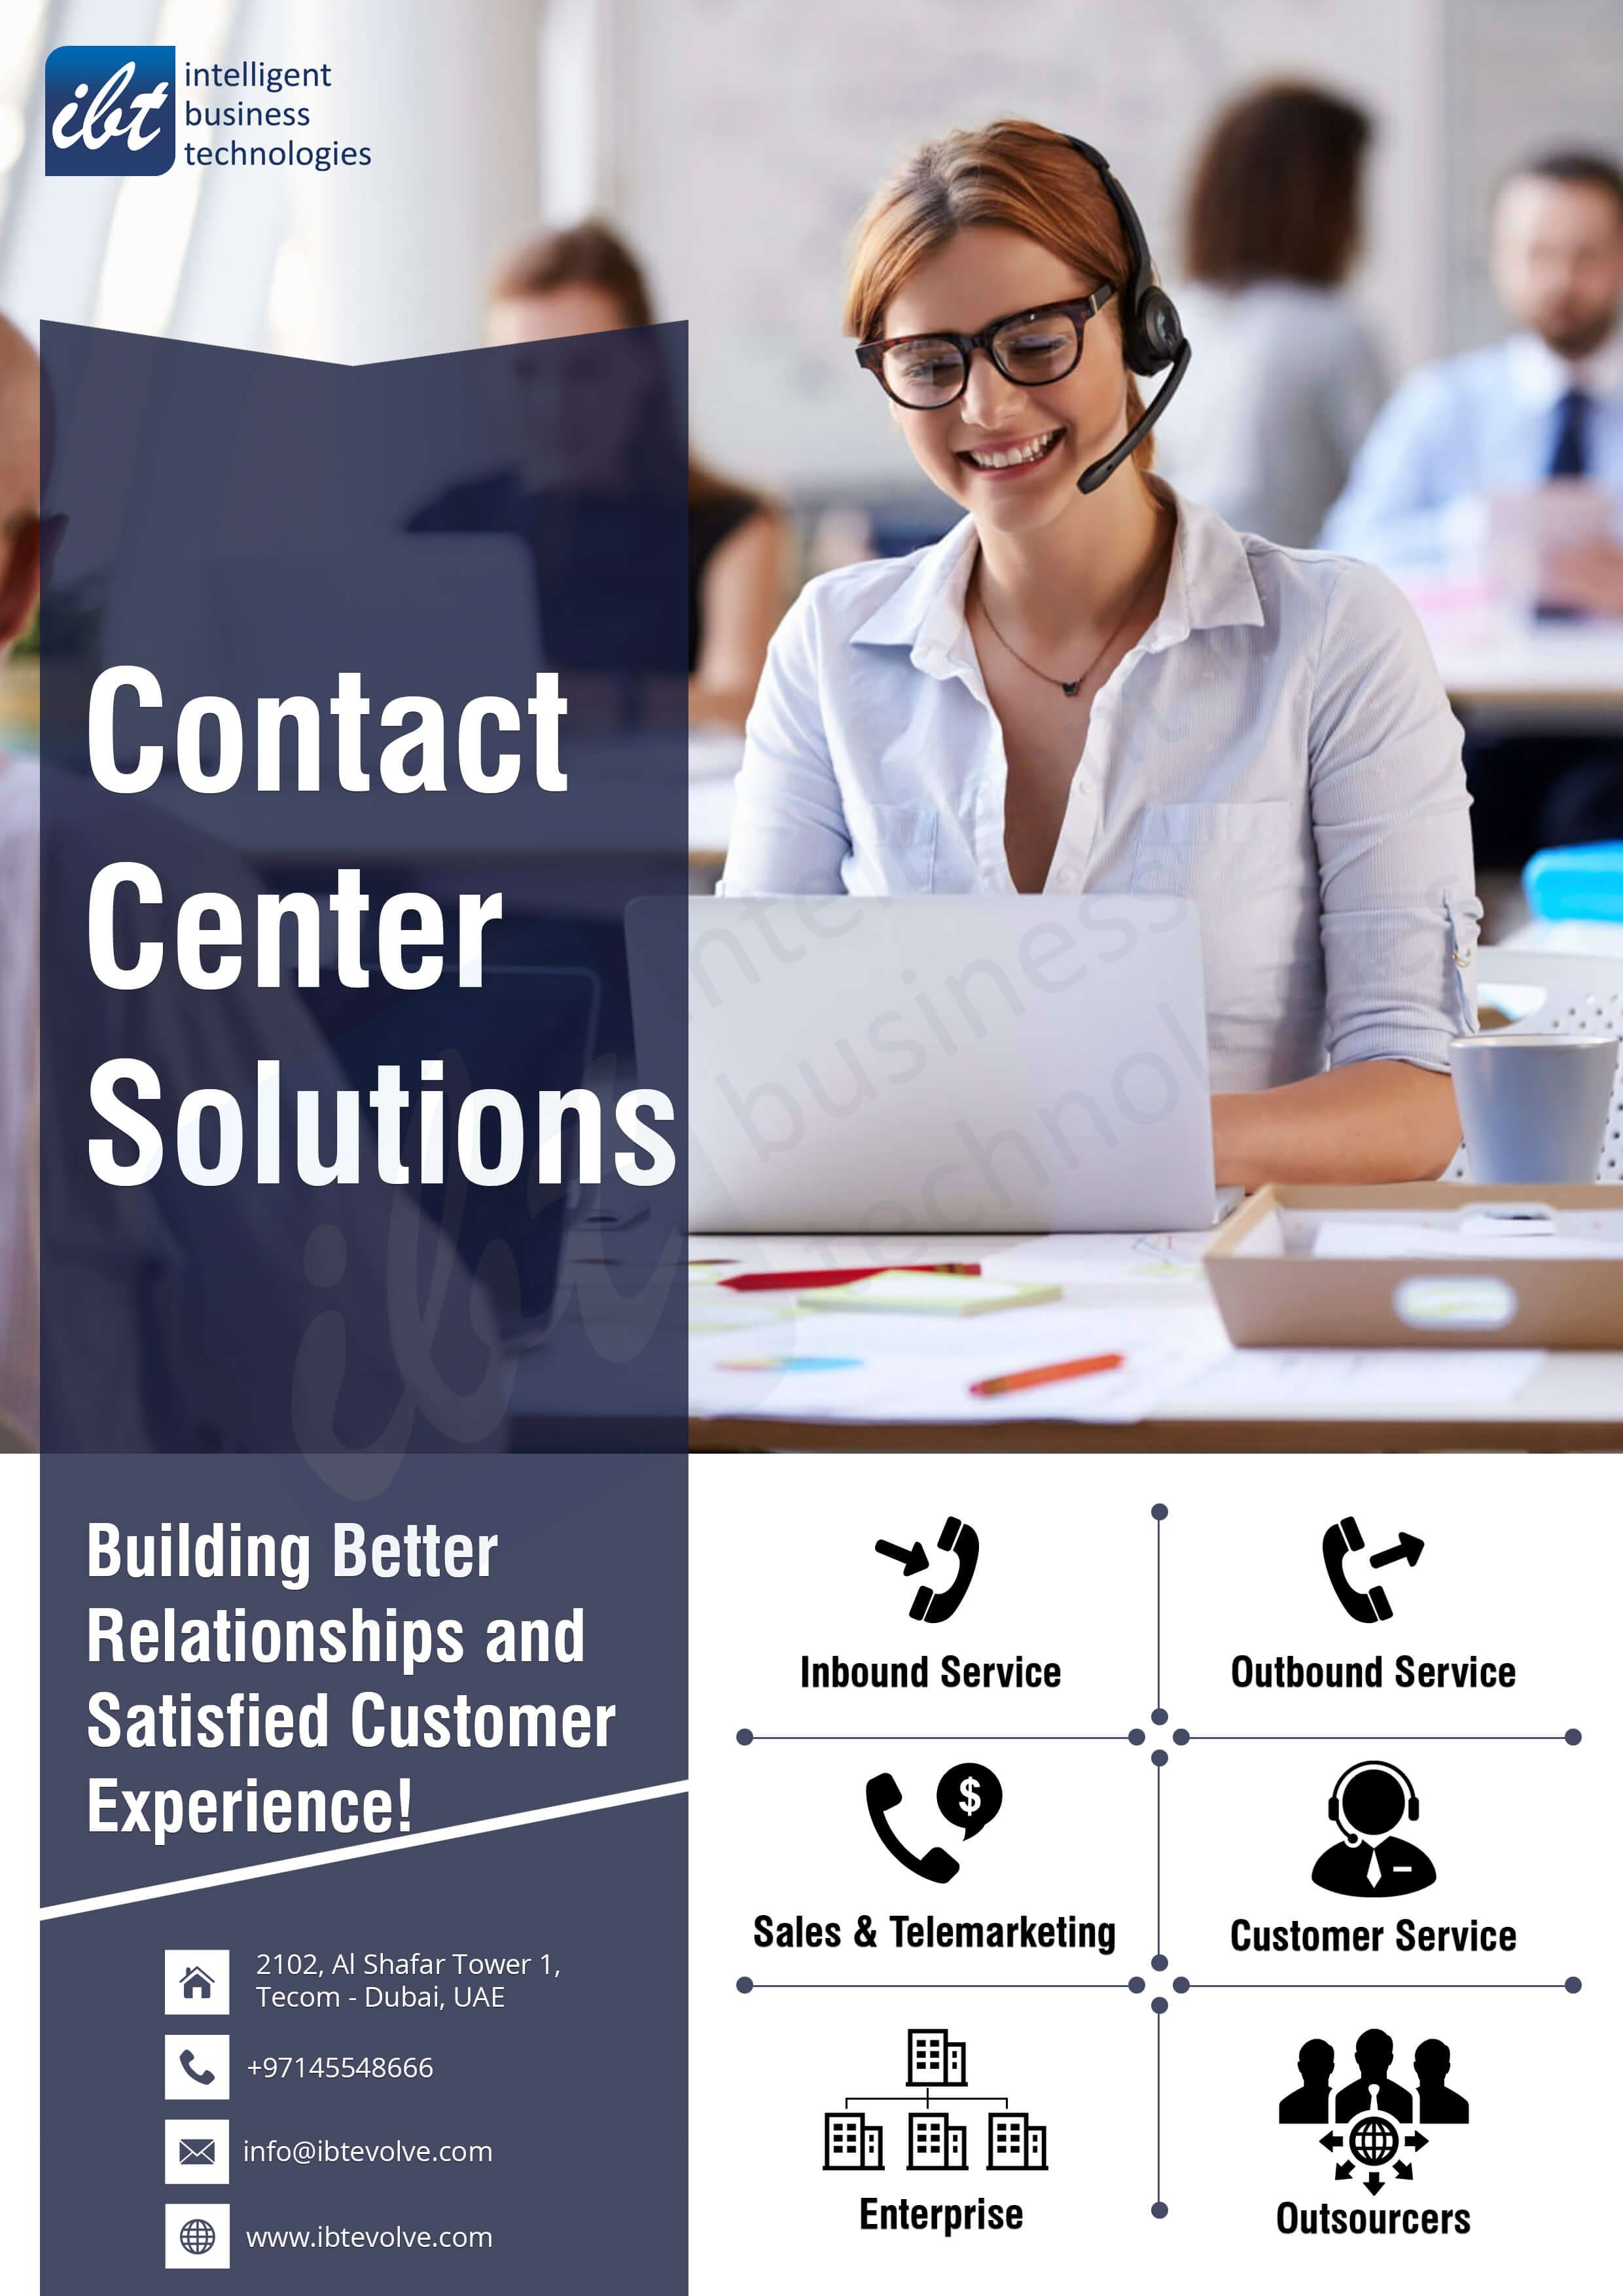 Contact Center How It Can Help Your Business Productivity?